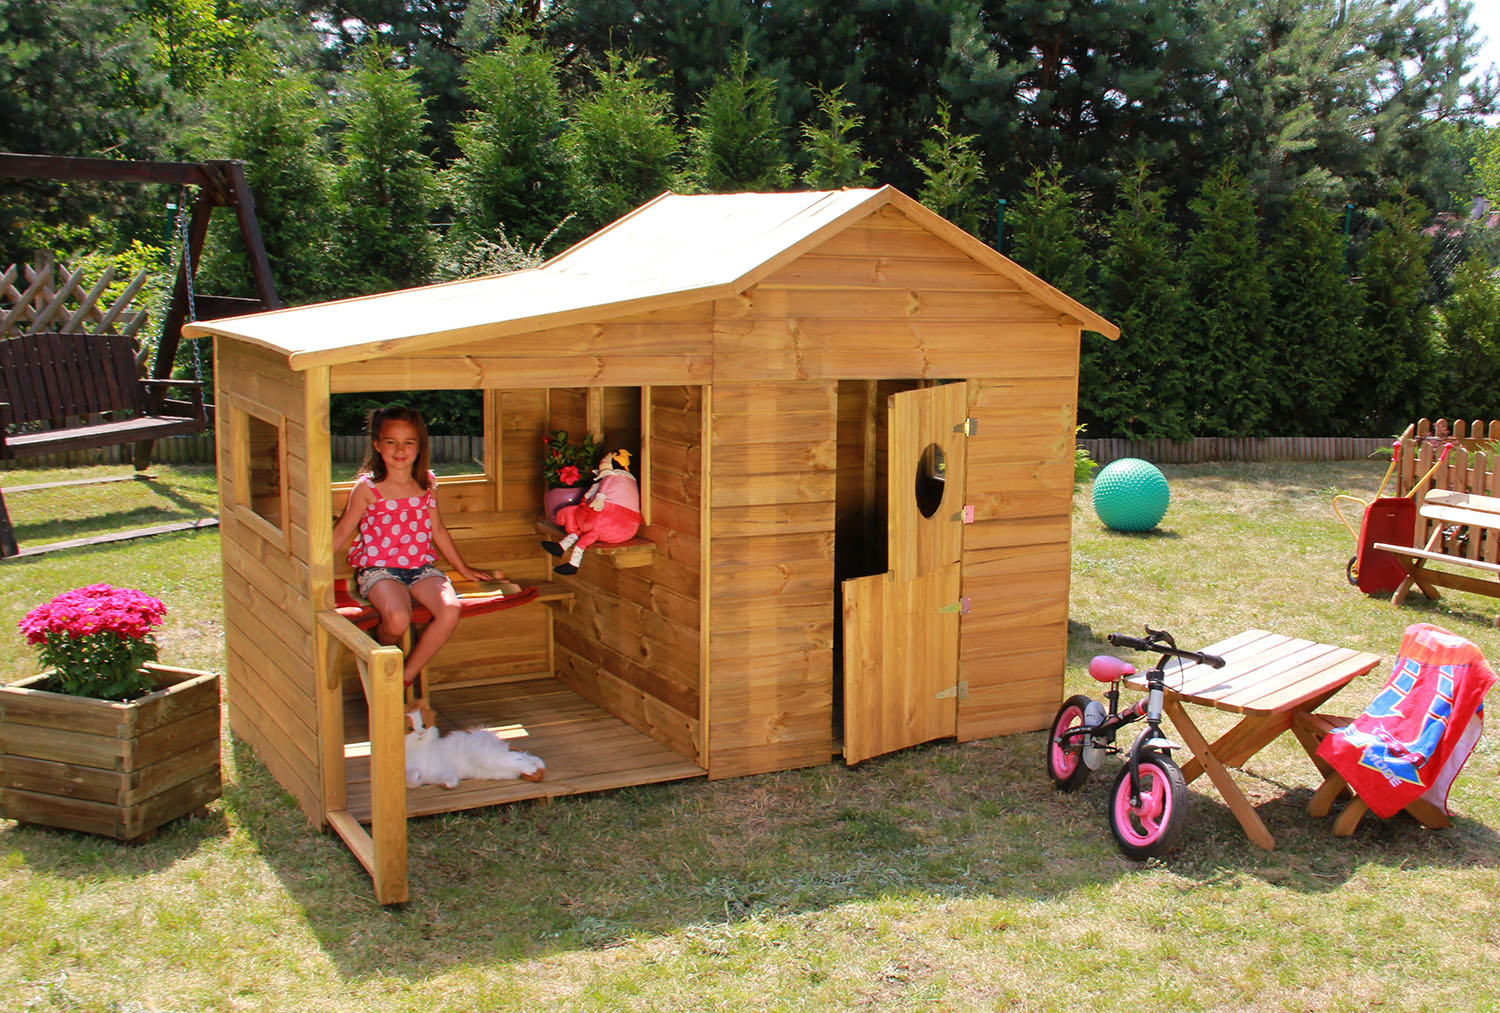 baumotte spielhaus holz kinderspielhaus heidi. Black Bedroom Furniture Sets. Home Design Ideas